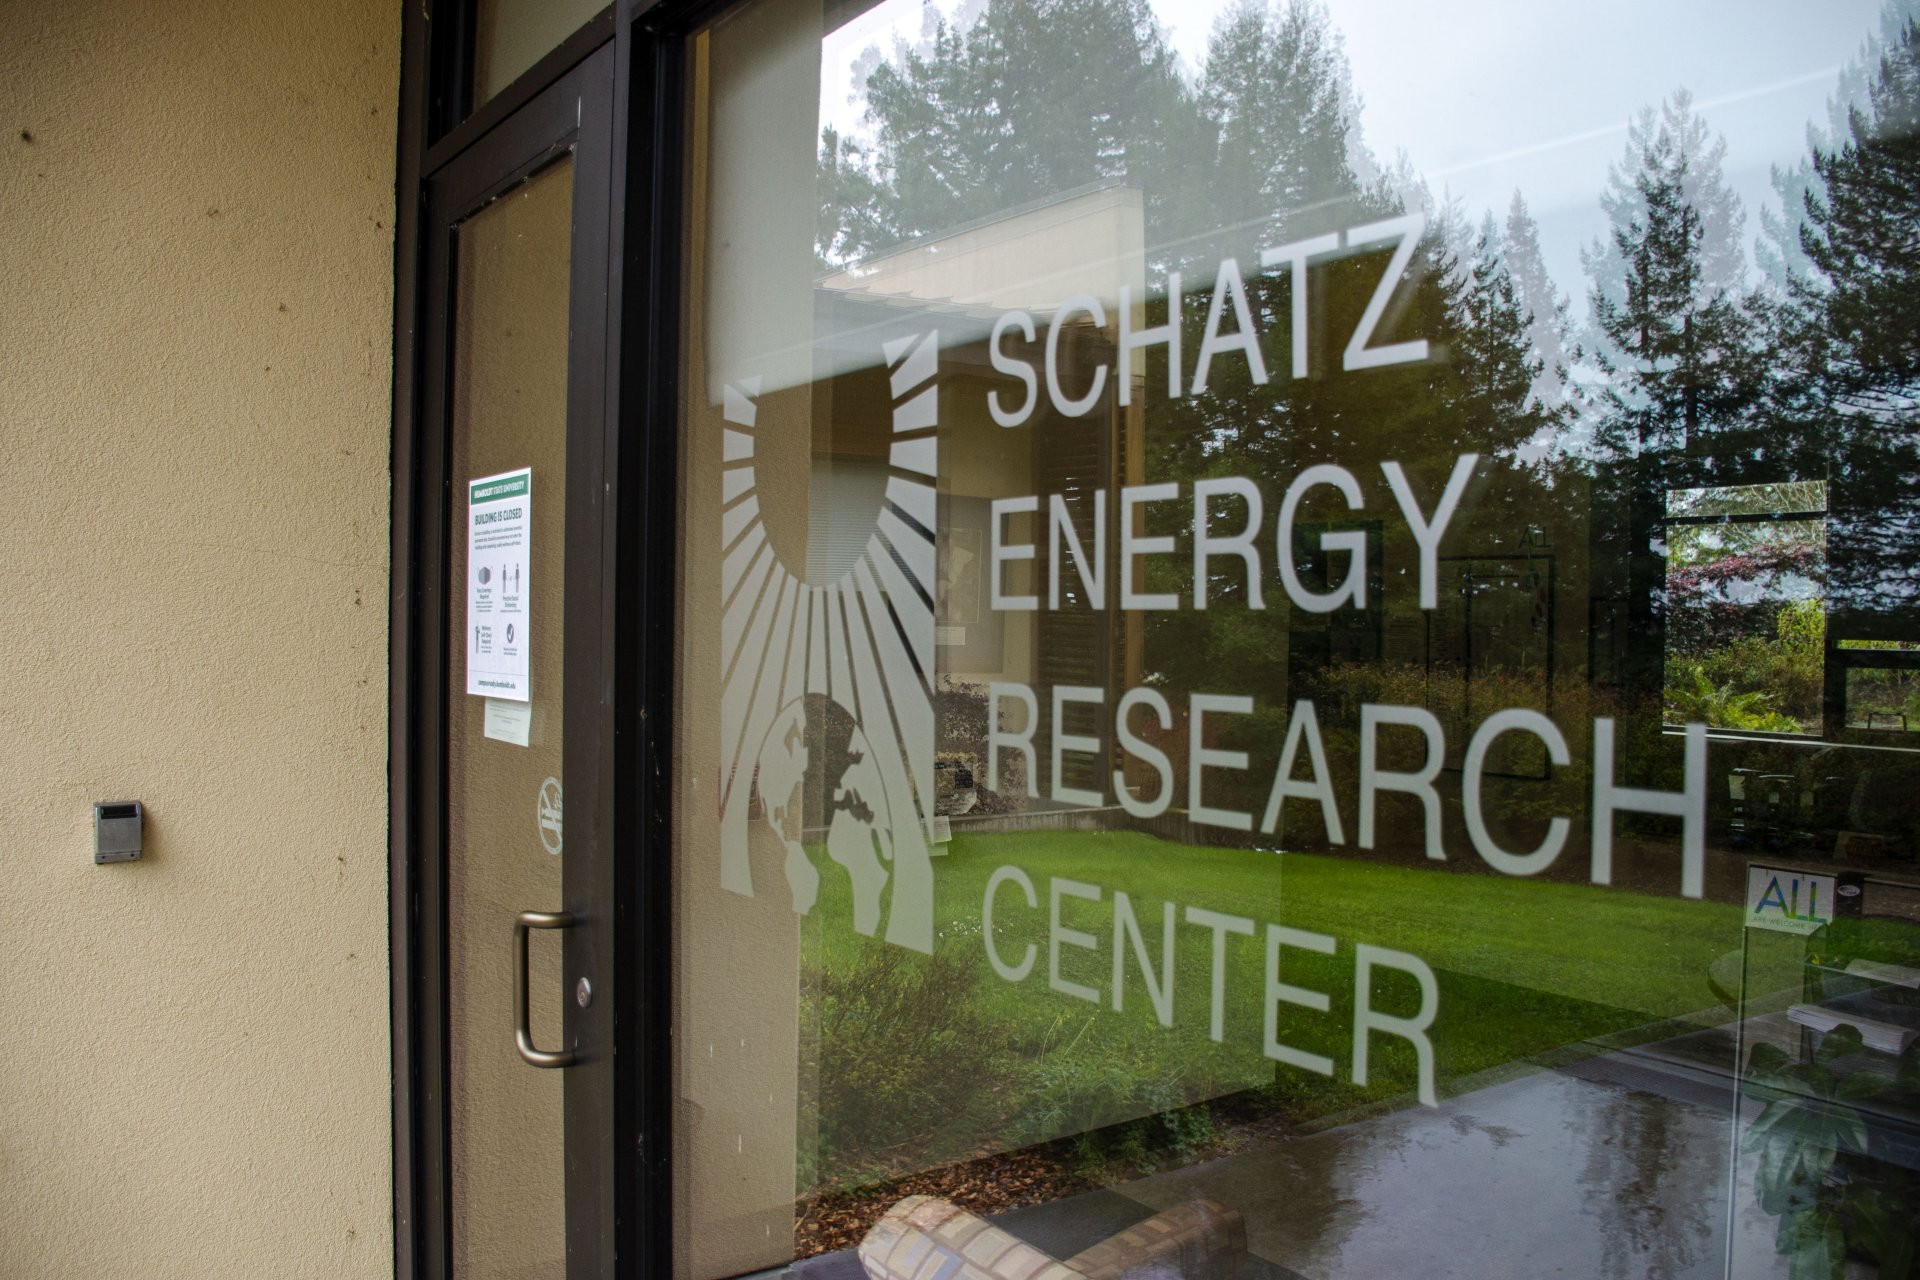 The entrance to Schatz Energy Research Center on the Humboldt State University campus on Feb. 1. | Photo by Elliott Portillo